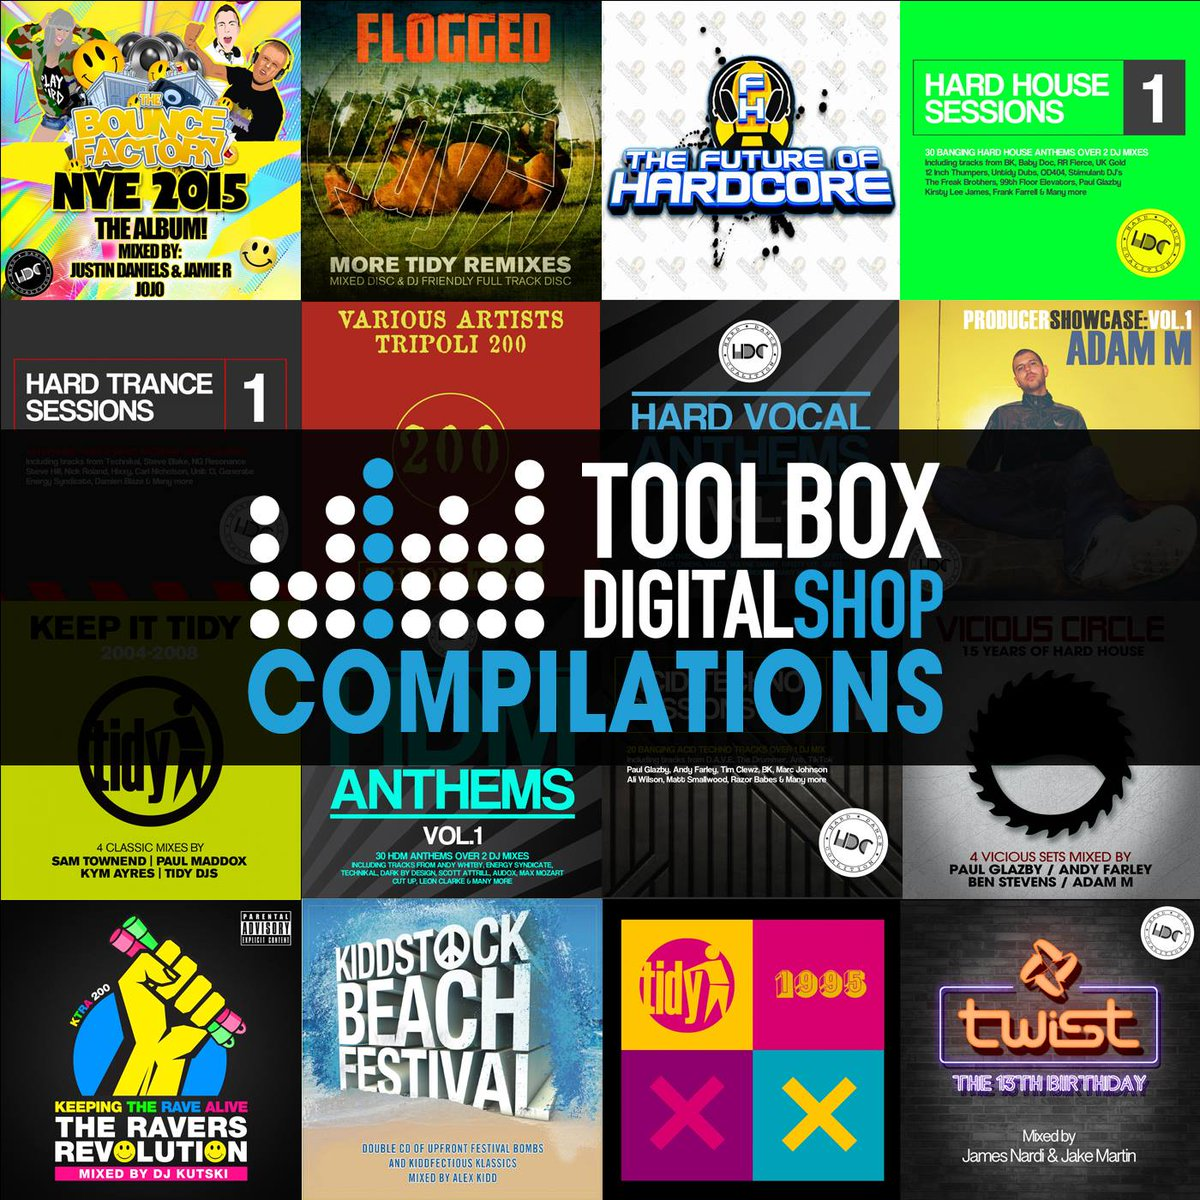 Digital Compilations are a great way to increase your music library for a fraction of the cost as many come bundled with all the single tracks.  Check out our compilations section and grab some fresh music: https://t.co/hkP8ILaFkm  #hardhouse #harddance #hardcore #toolboxdigital https://t.co/2UivFdc0iy